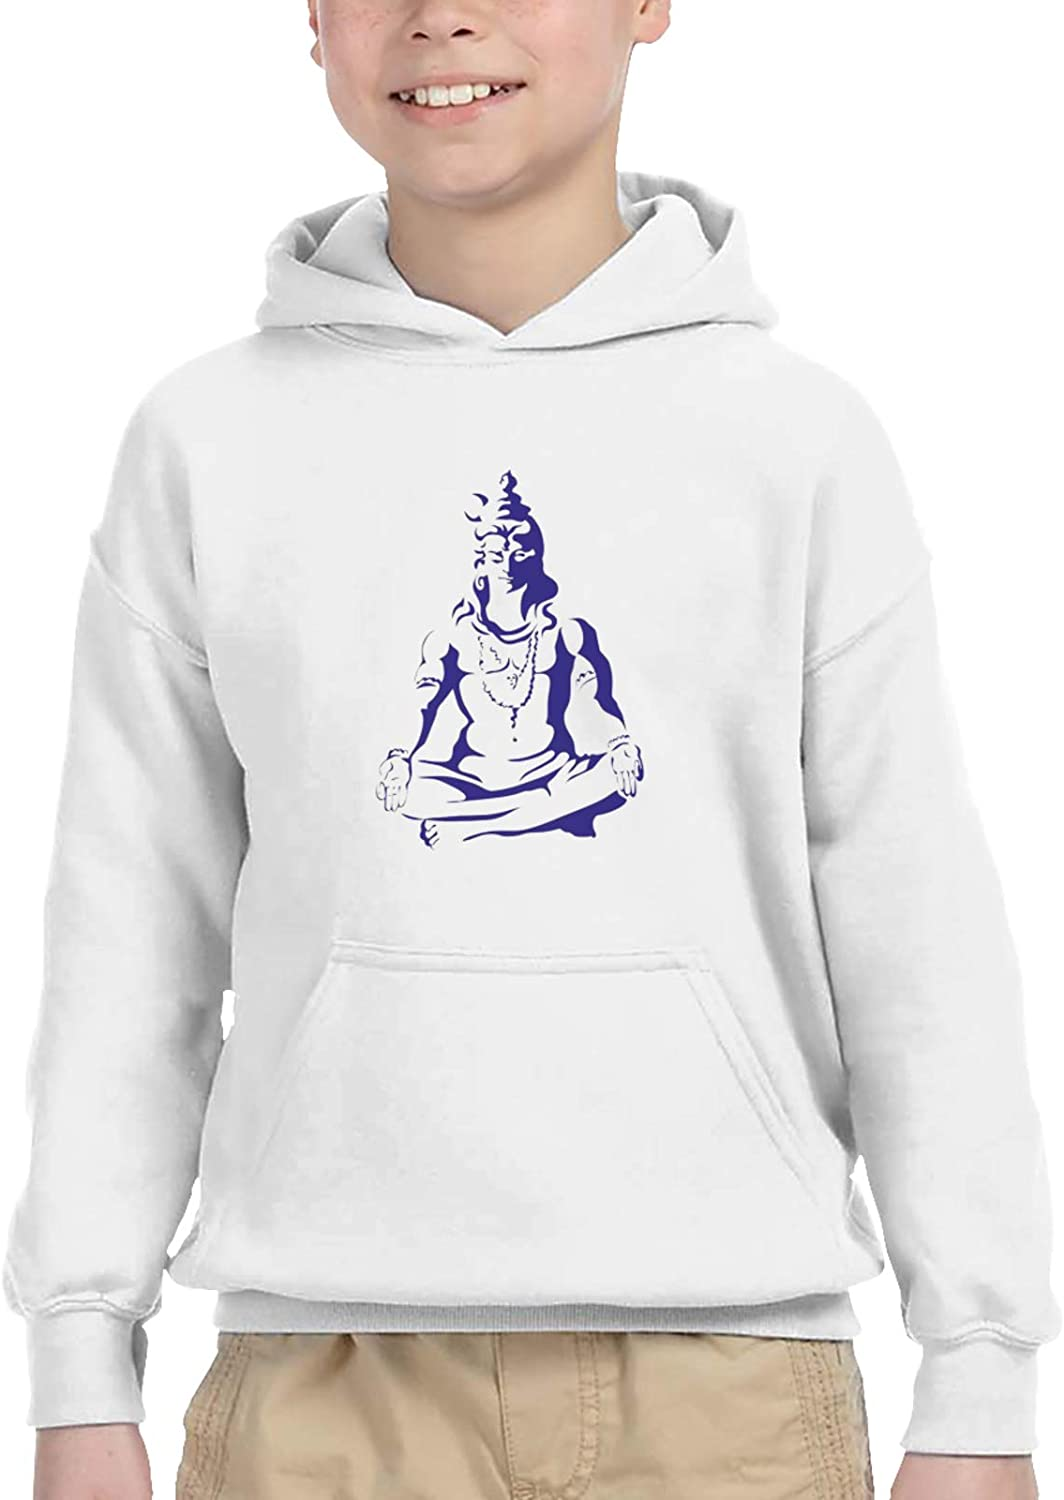 Graphic Inspirational A surprise price is realized Baby Boy Max 90% OFF Girls with Pocket Hoodies Hooded